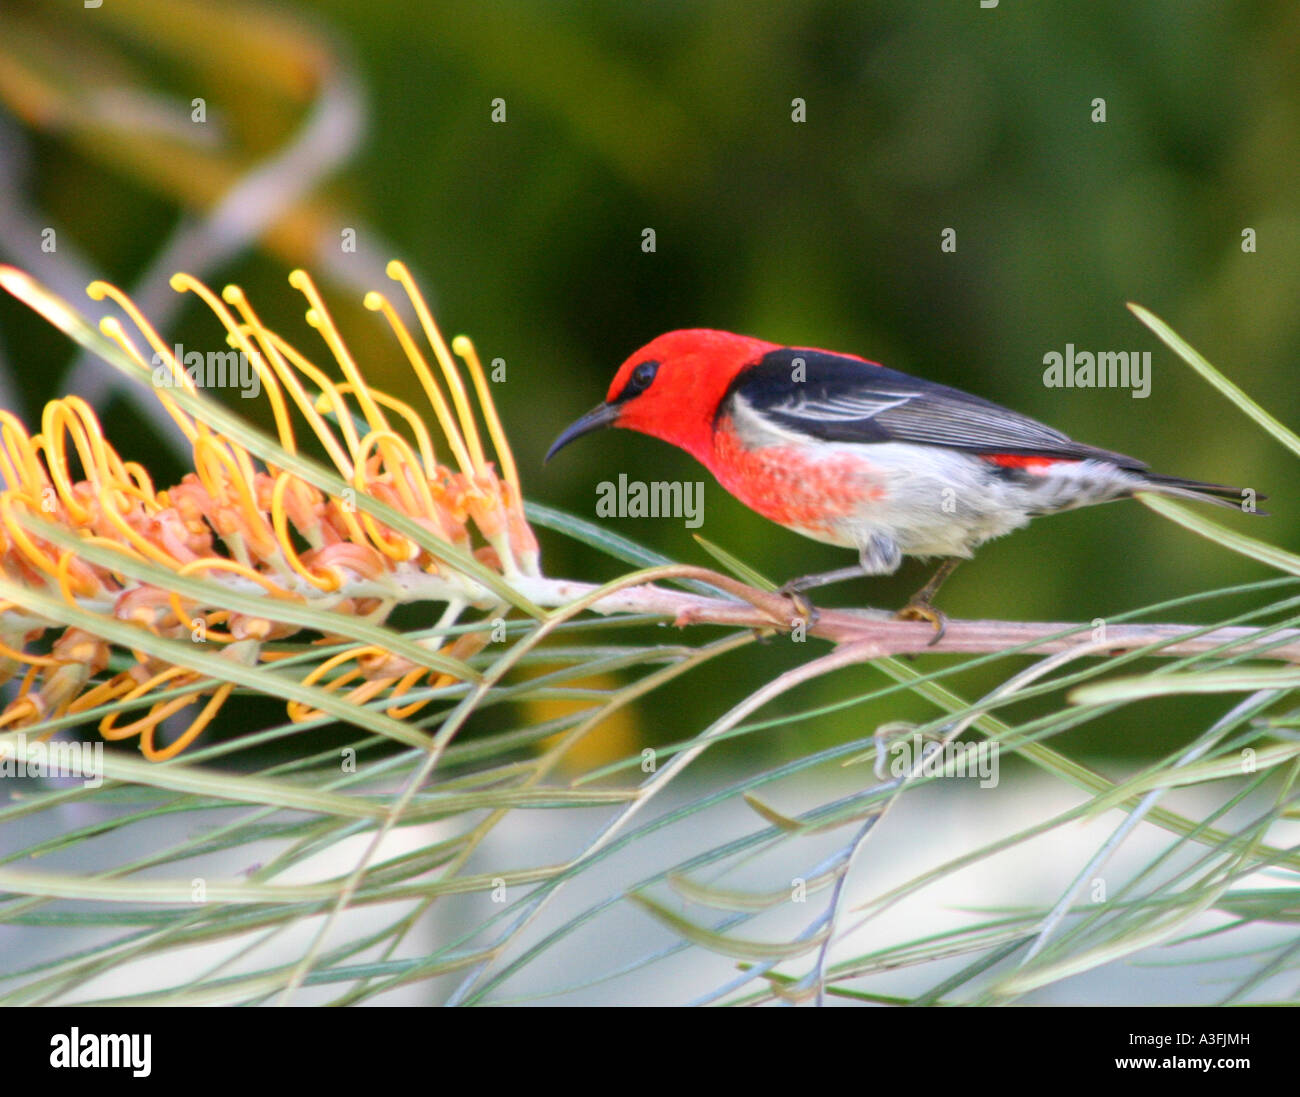 A SCARLET HONEYEATER FEEDING ON A GREVILLEA TREE BAPDA9093 - Stock Image